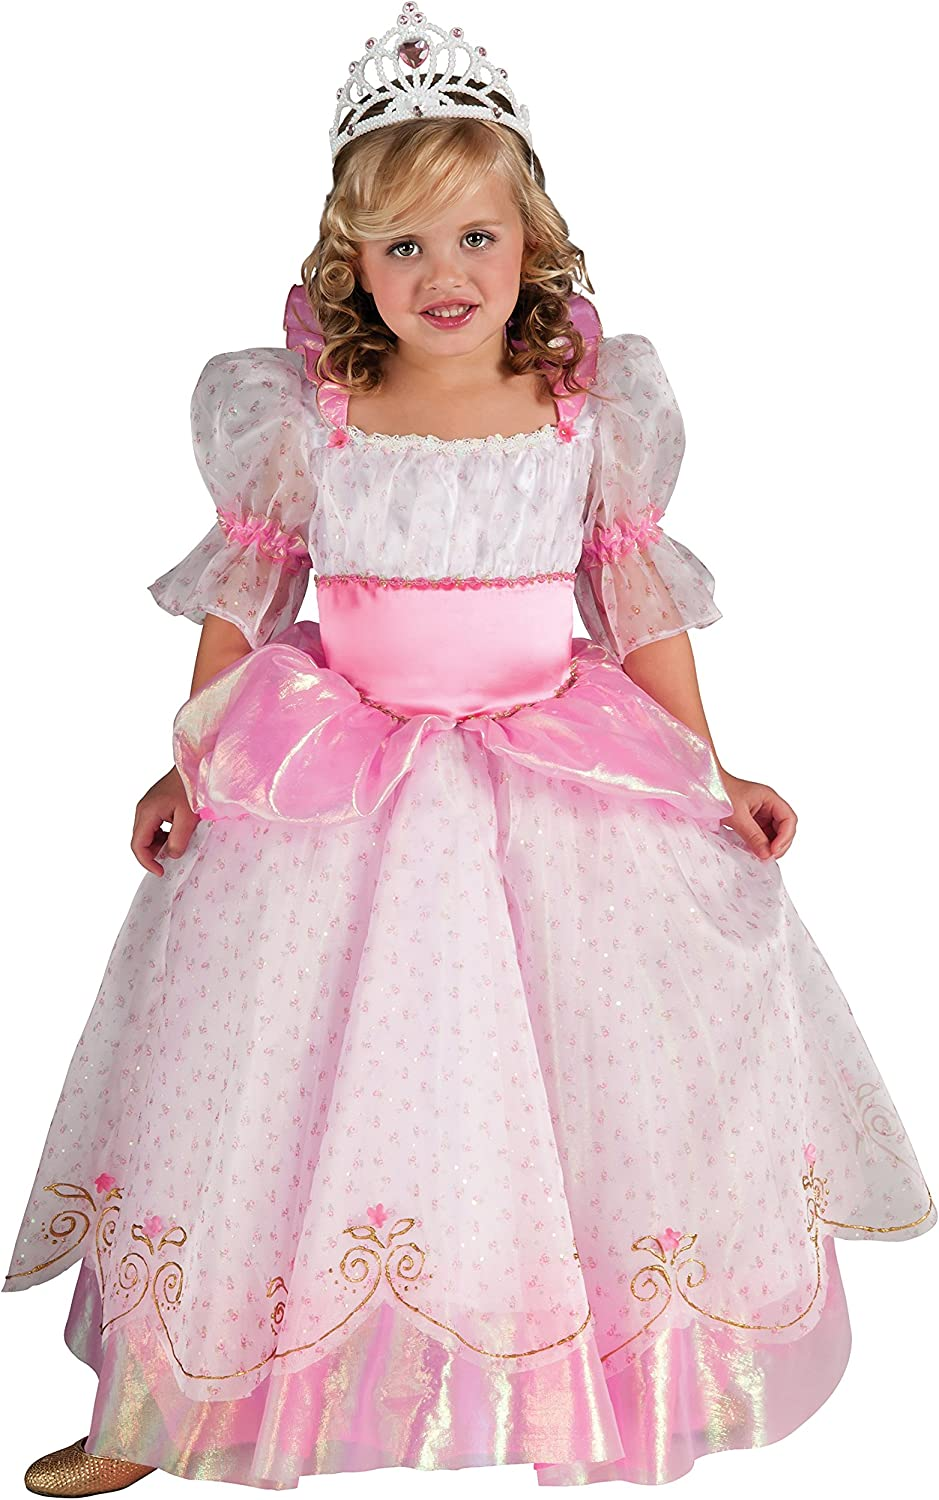 GIRLS BELLE Dress Princess Beauty /& Beast Costume Party Age 4-9 Book Week